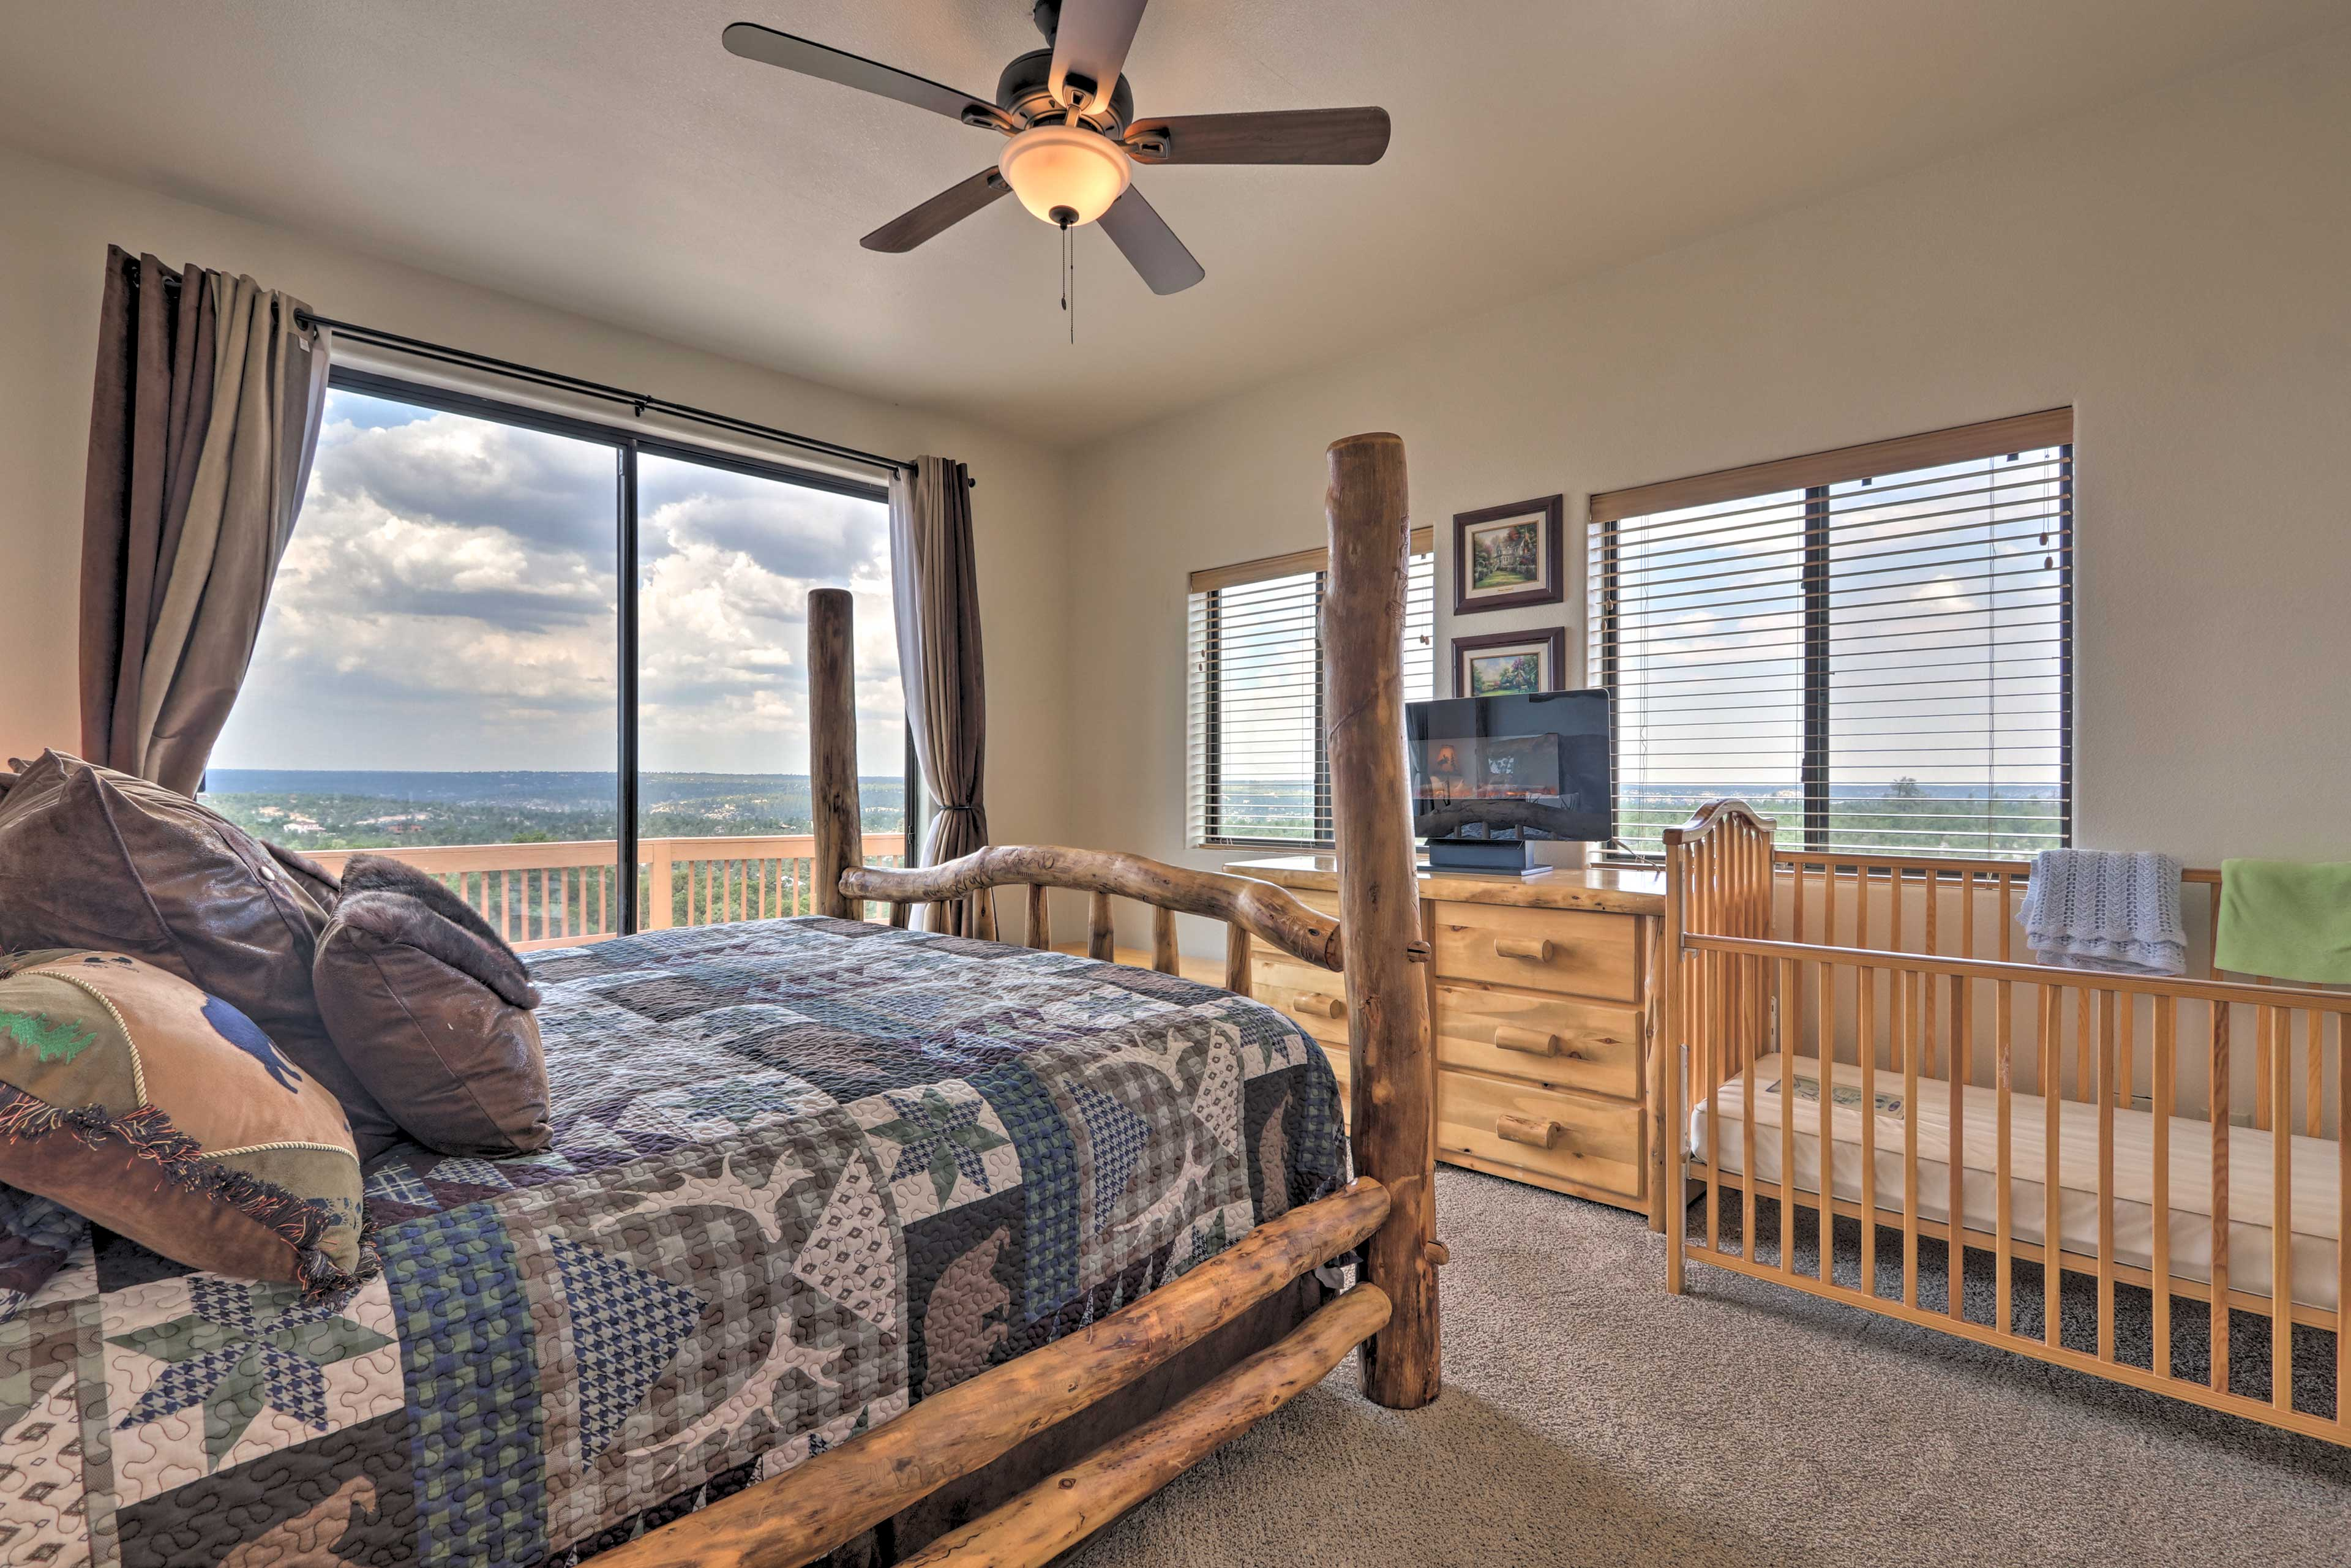 The master bedroom features a king bed along with a crib, great for families!